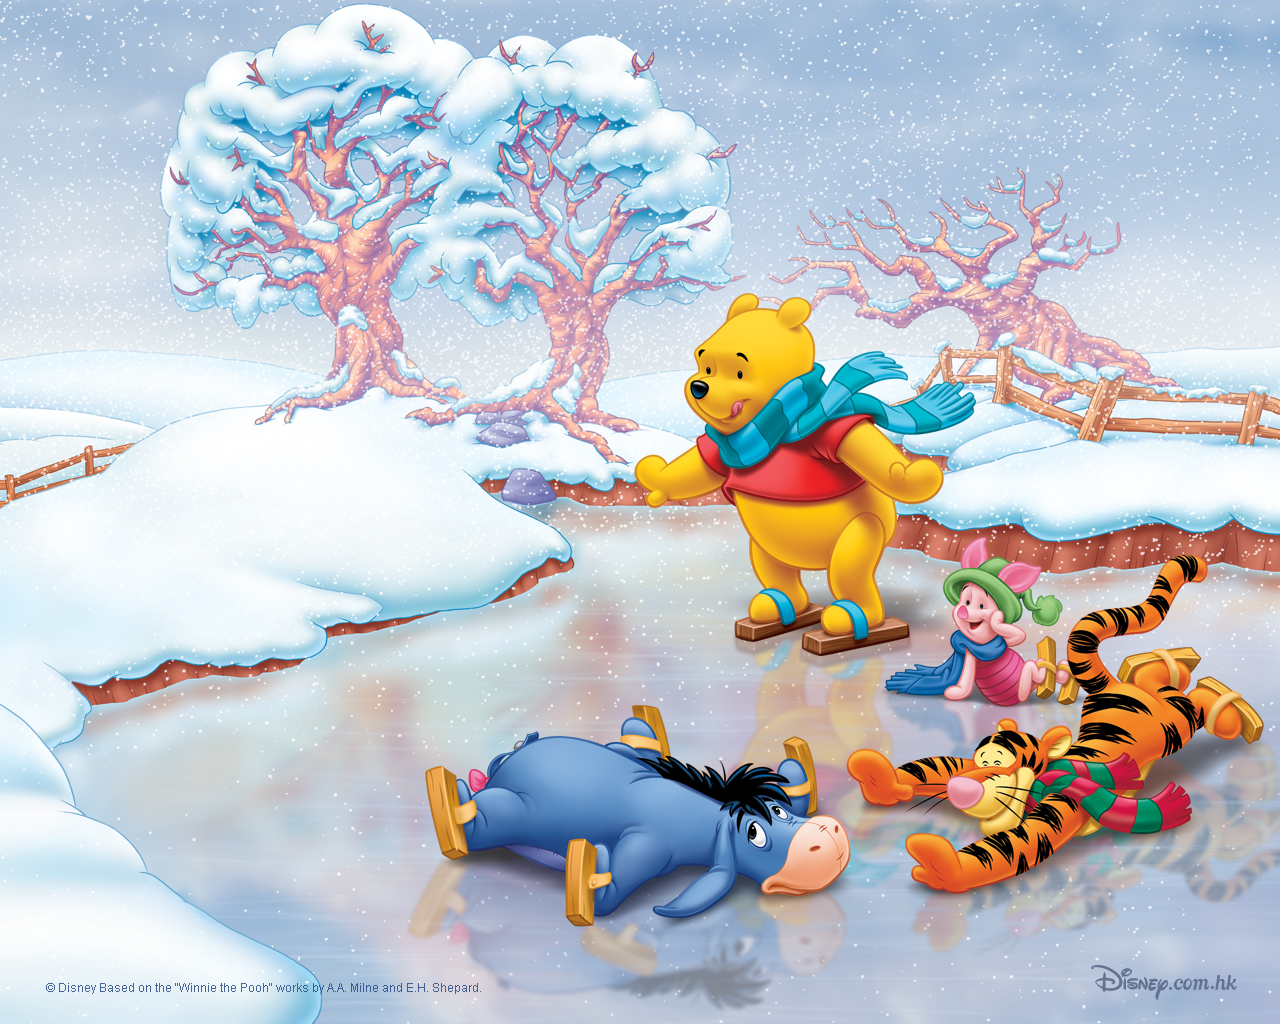 Tops Wallpapers Disney Christmas Wallpapers Set 2 1280x1024